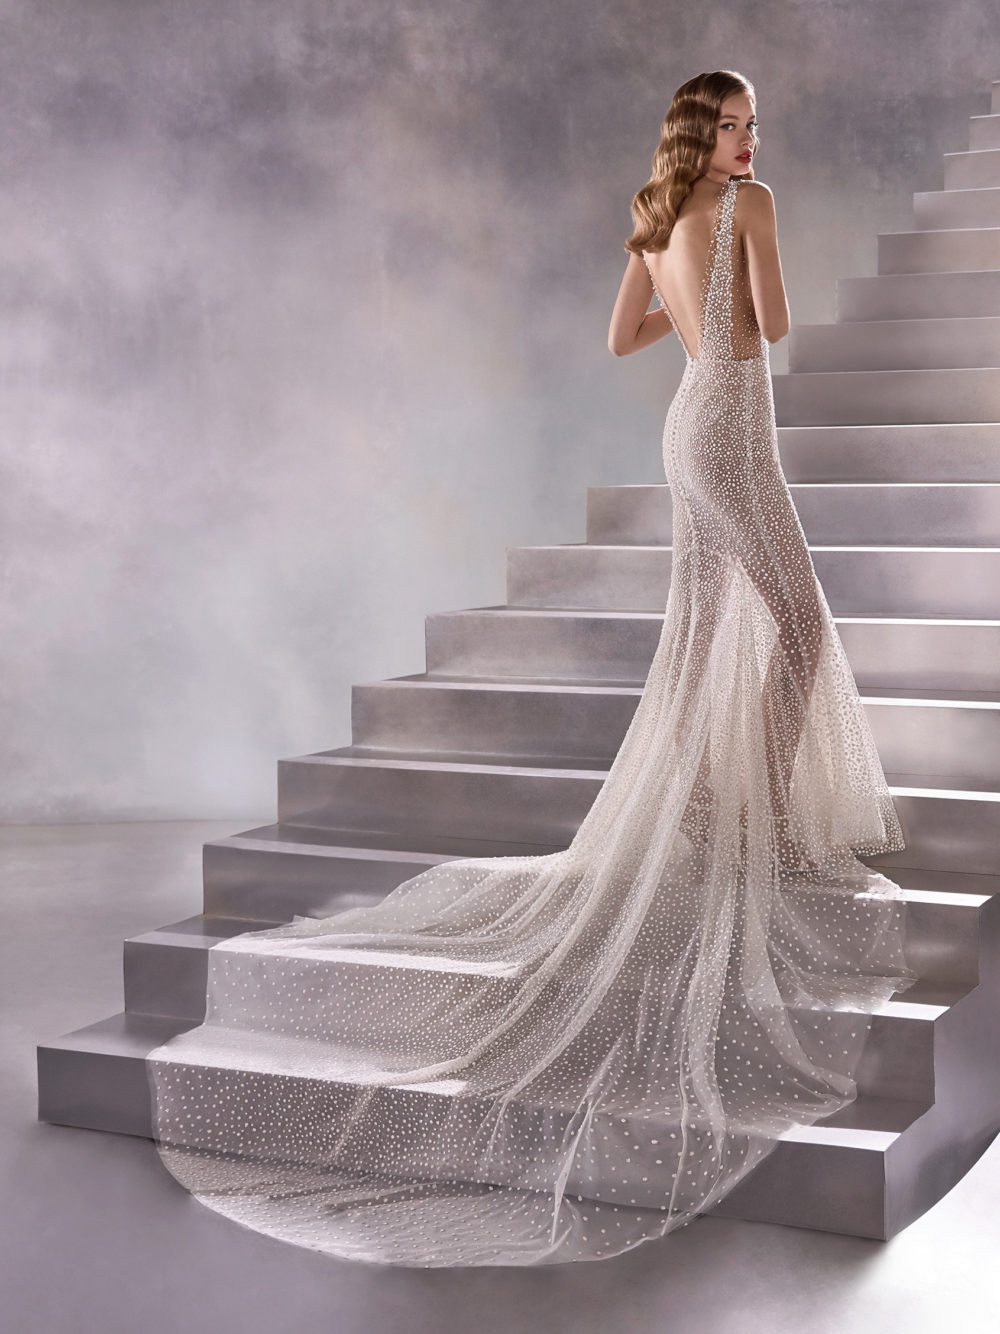 Pronovias Constellation Wedding Gown Dress 2020 Atelier Collection full